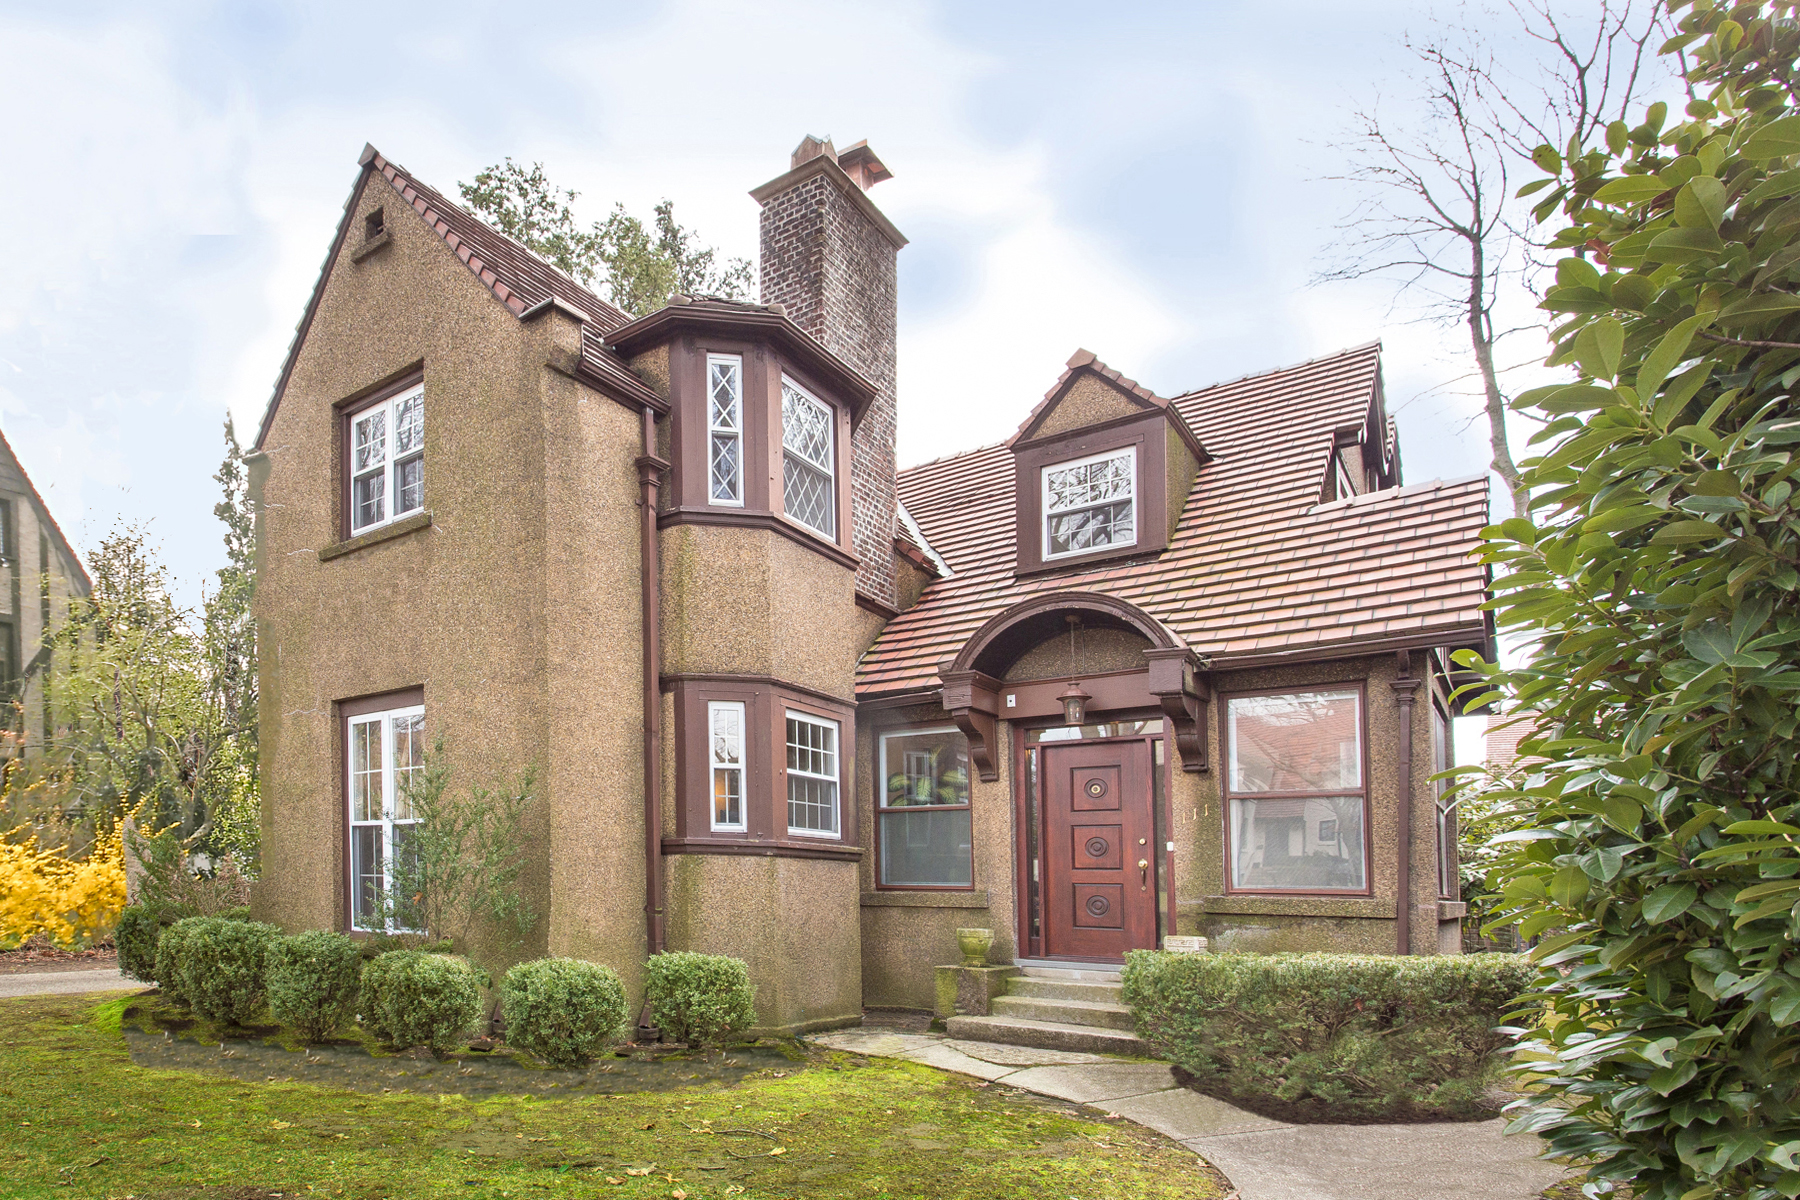 """Single Family Homes for Sale at """"A MASTERPIECE OF TRADITIONAL GARDENS ARCHITECTURE"""" 111 Whitson Street, Forest Hills Gardens, Queens, New York 11375 United States"""